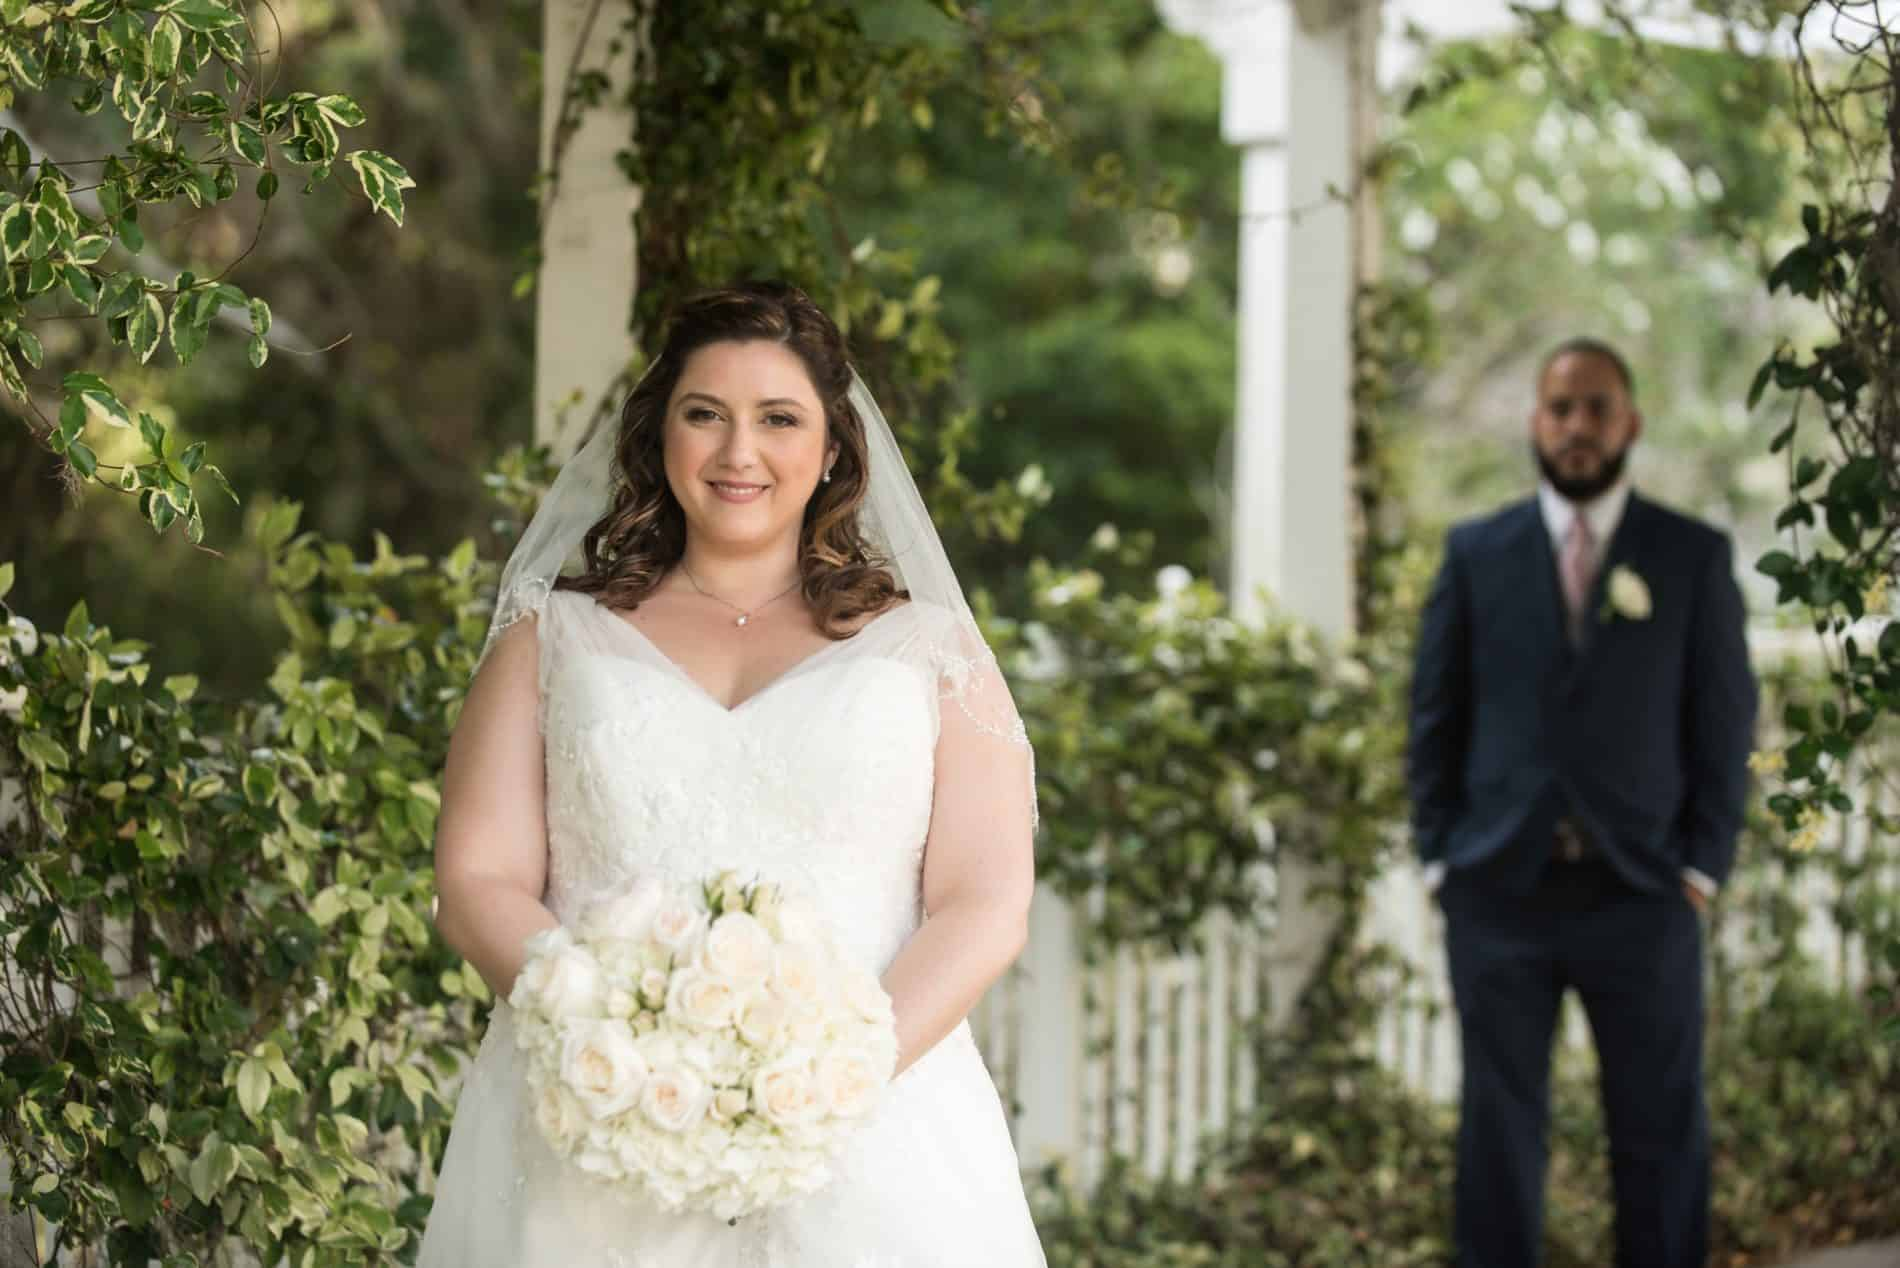 Romantic Bridal Portrait outdoors at her wedding